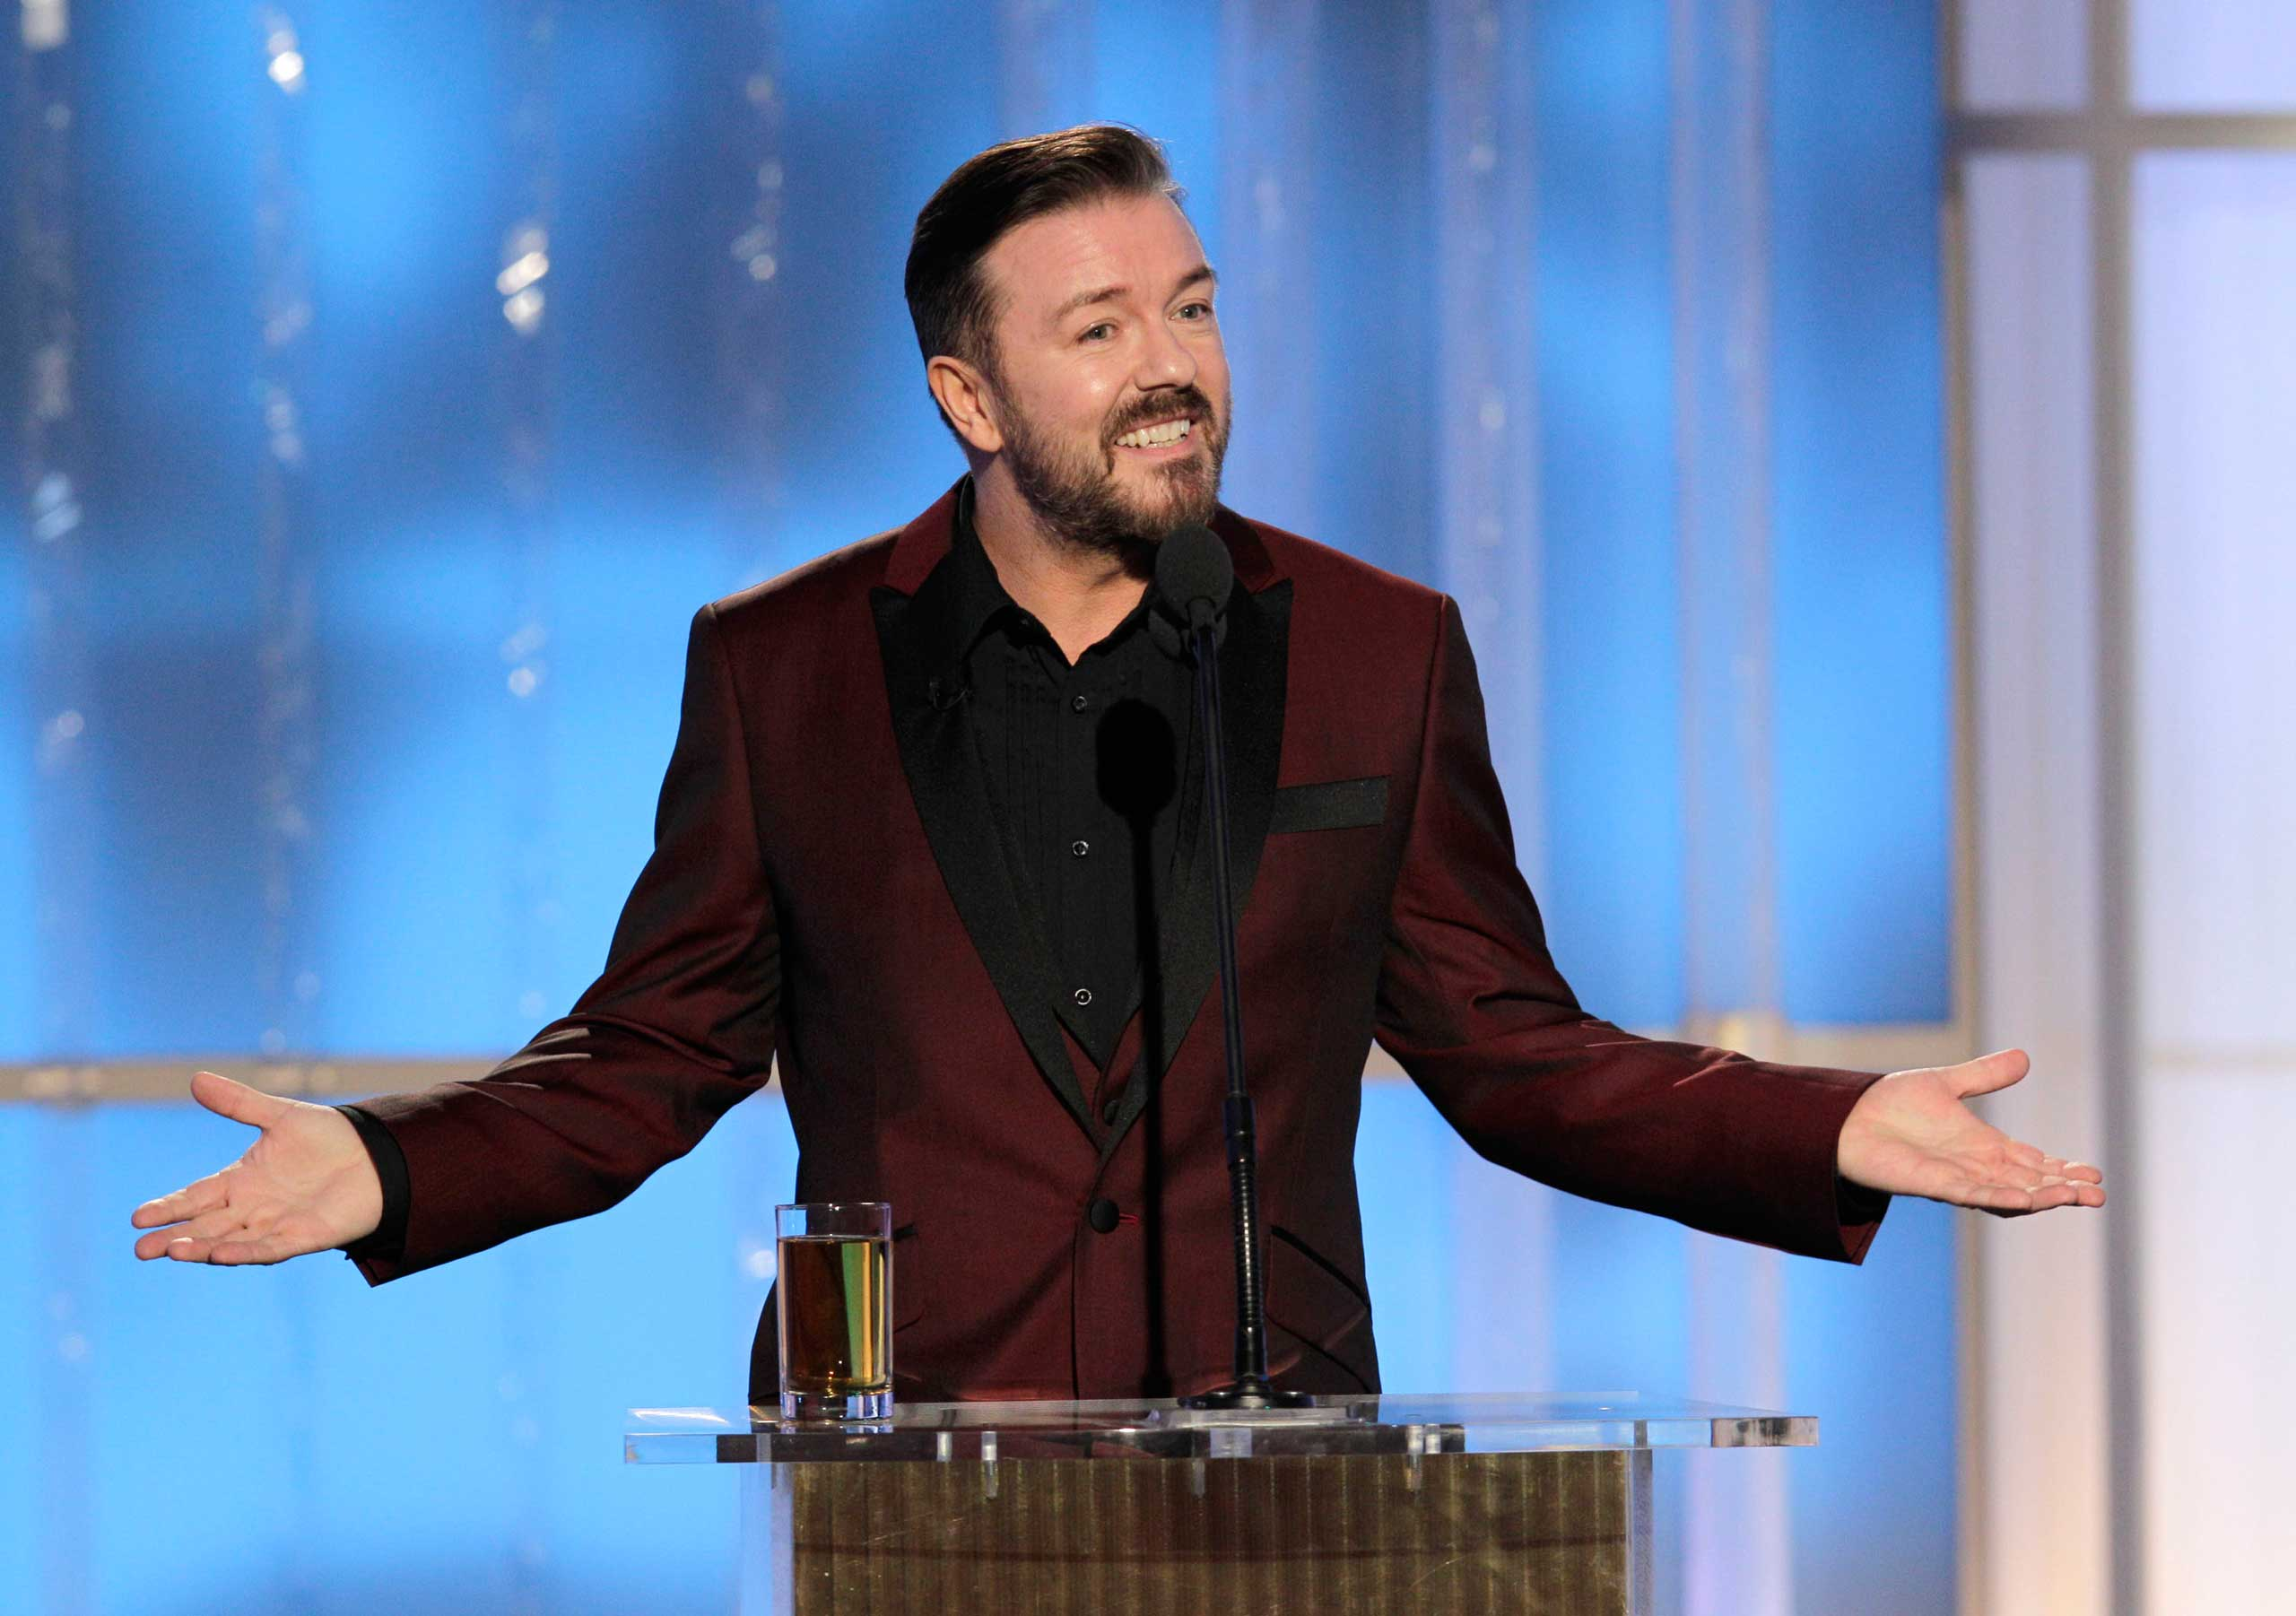 Ricky Gervais onstage during Golden Globe Awards in 2012.